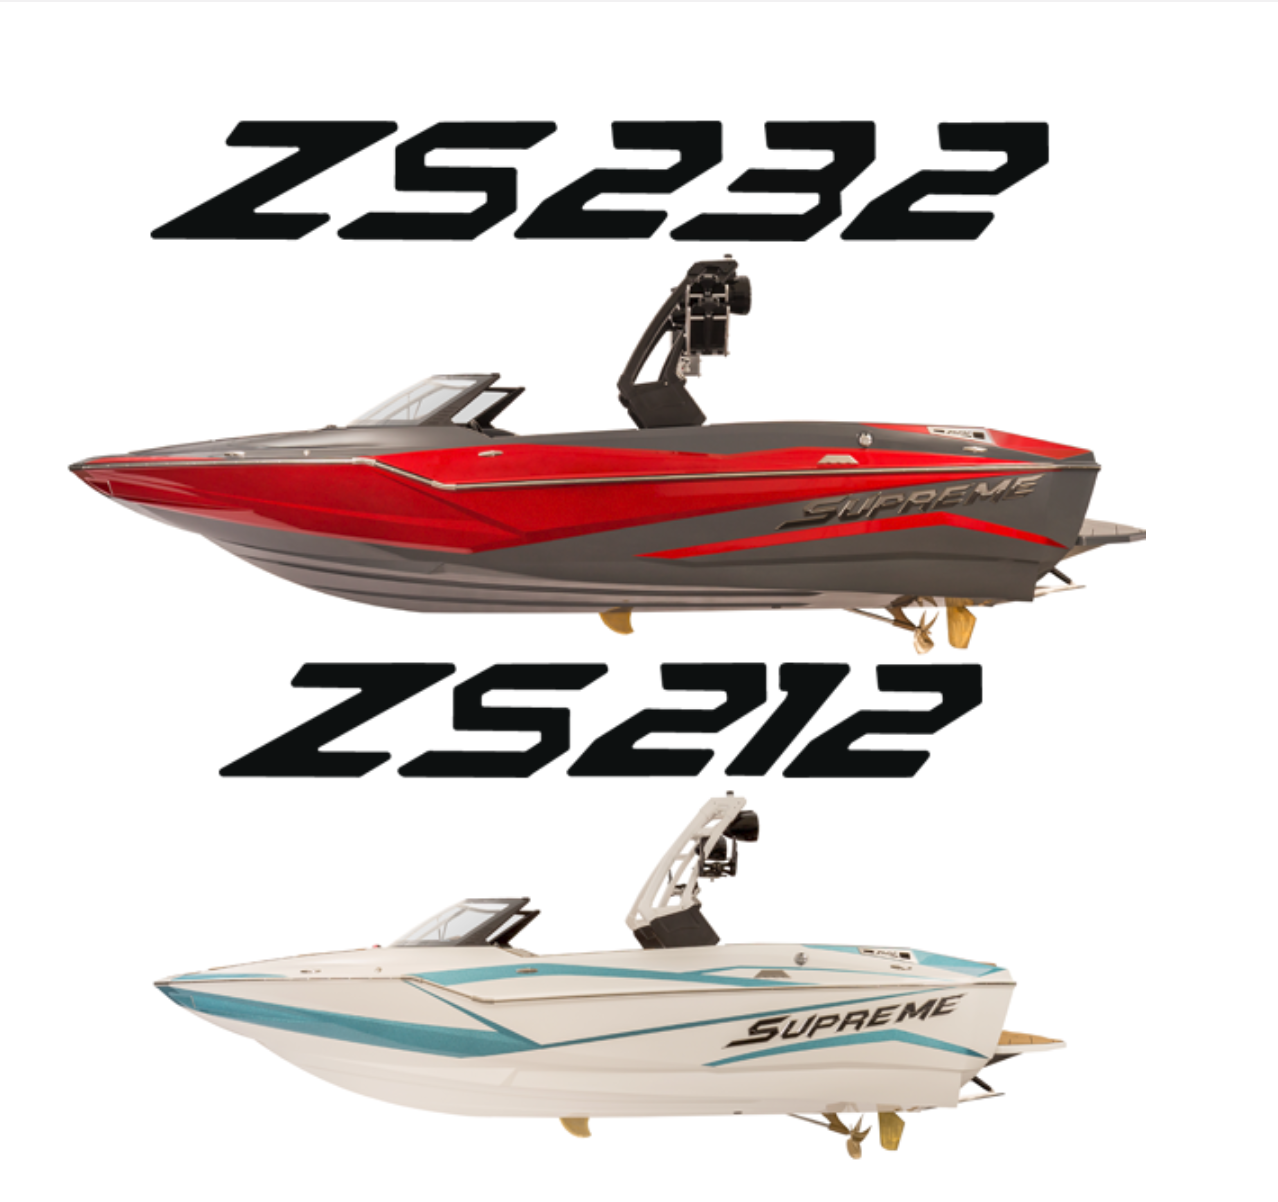 INTRODUCING THE 2019 SUPREME ZS SERIES HIGH PERFORMANCE WAKE SURFING